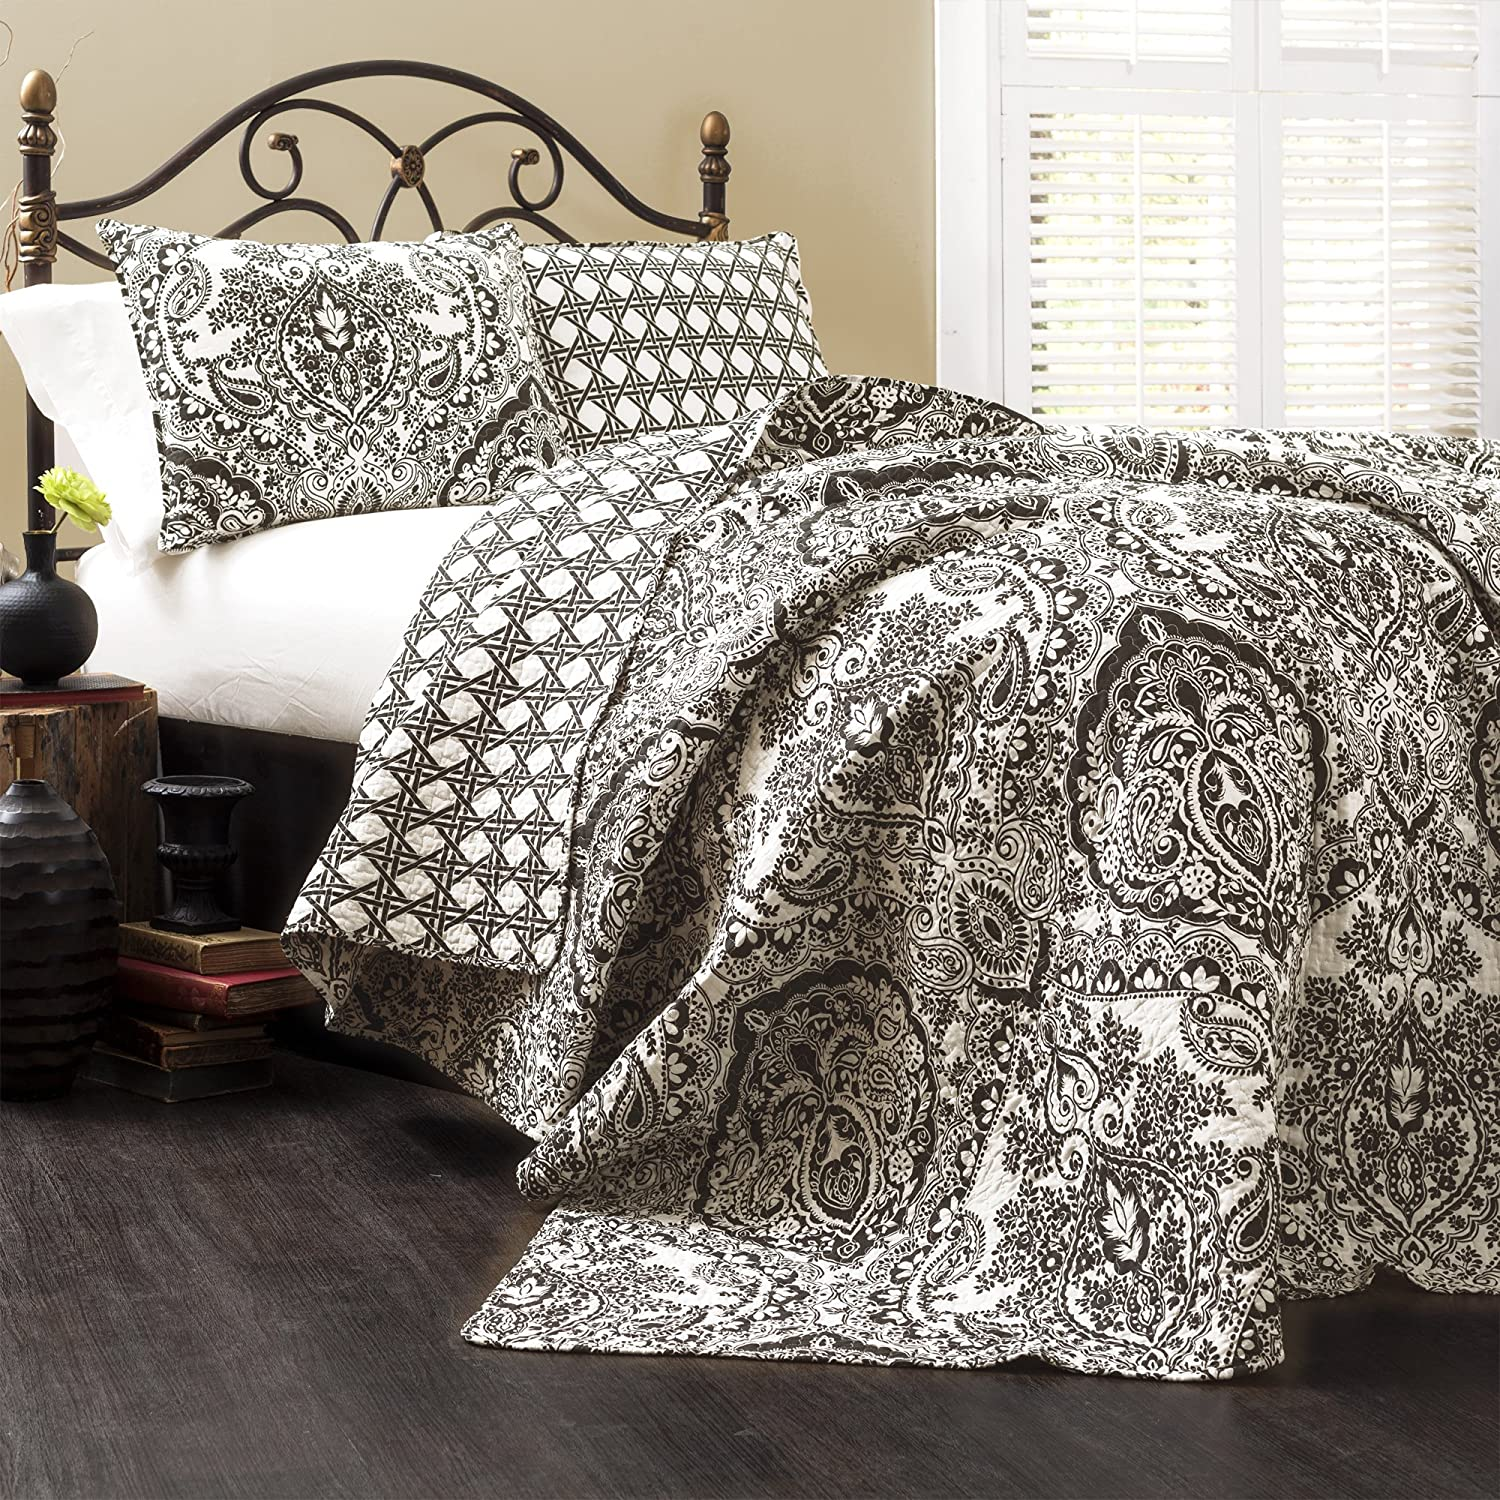 Lush Decor Aubree Quilt Paisley Damask Print Pattern Reversible 3 Piece Lightweight Bedding Blanket Bedspread Set, King, Black/White